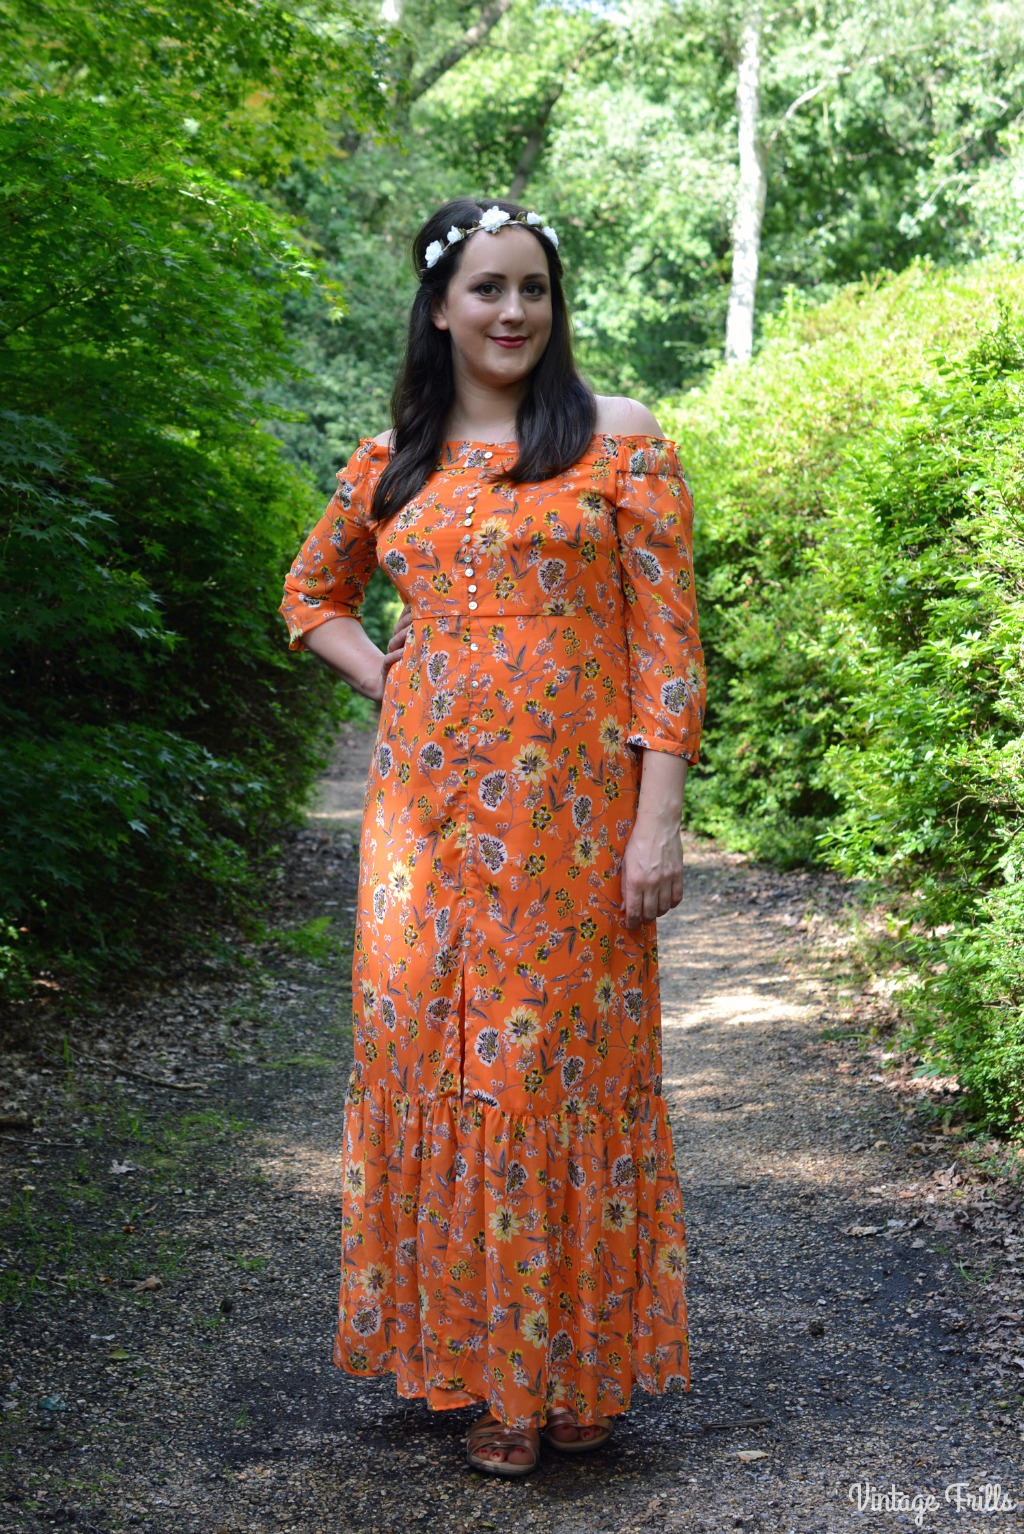 Retro 1970s Inspired Orange Maxi Dress from Peacocks. High Street.